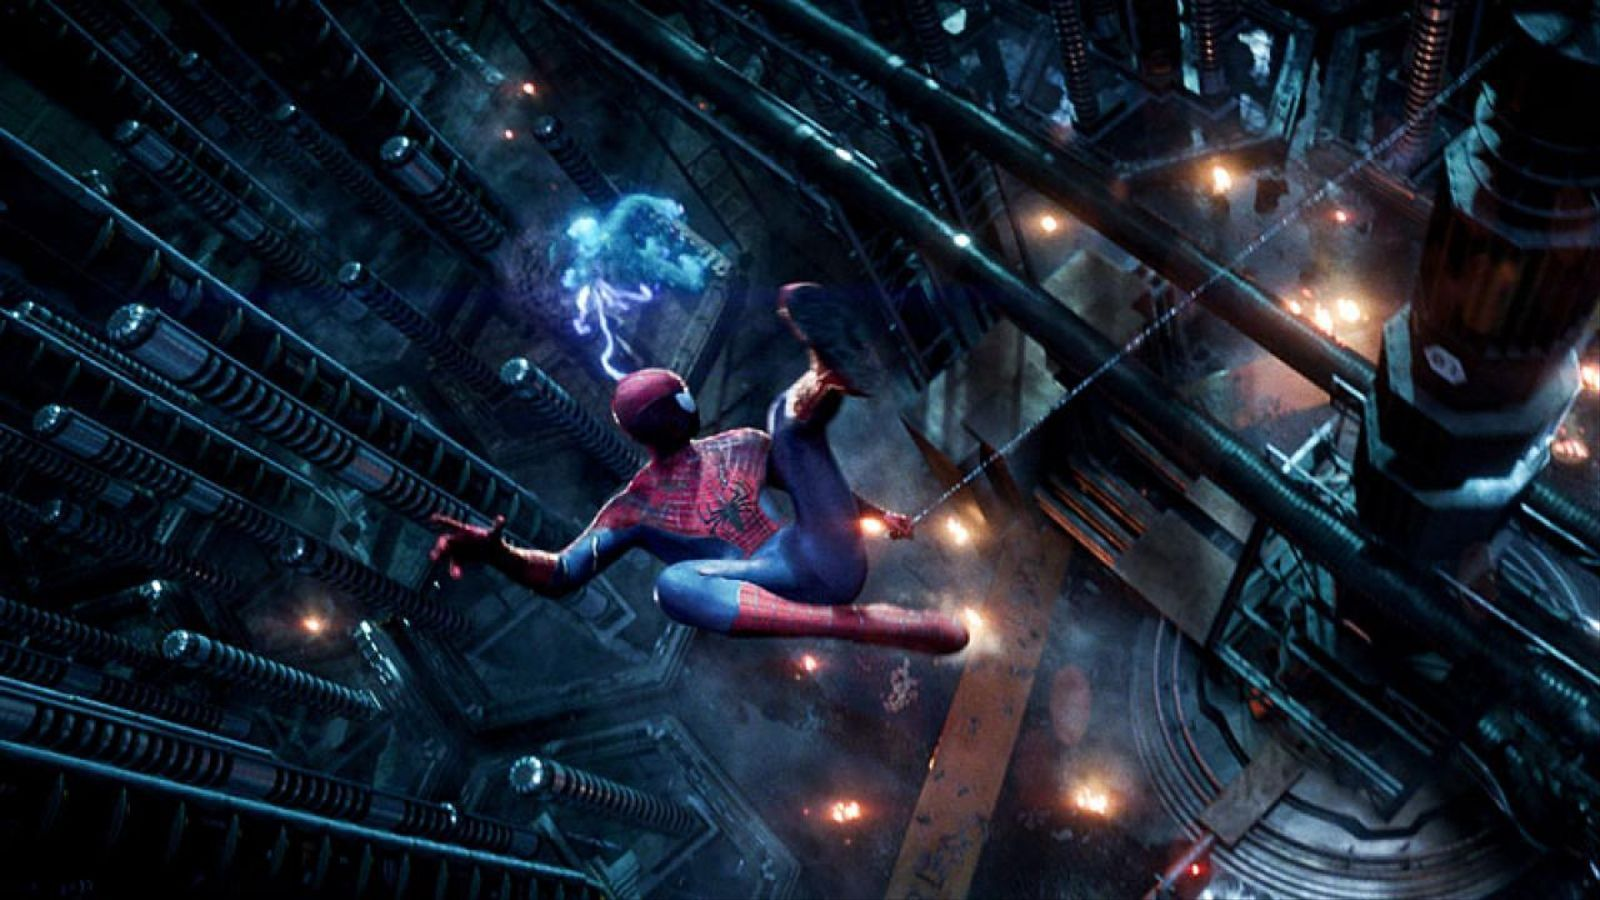 Tràiler final de 'The amazing Spiderman 2'